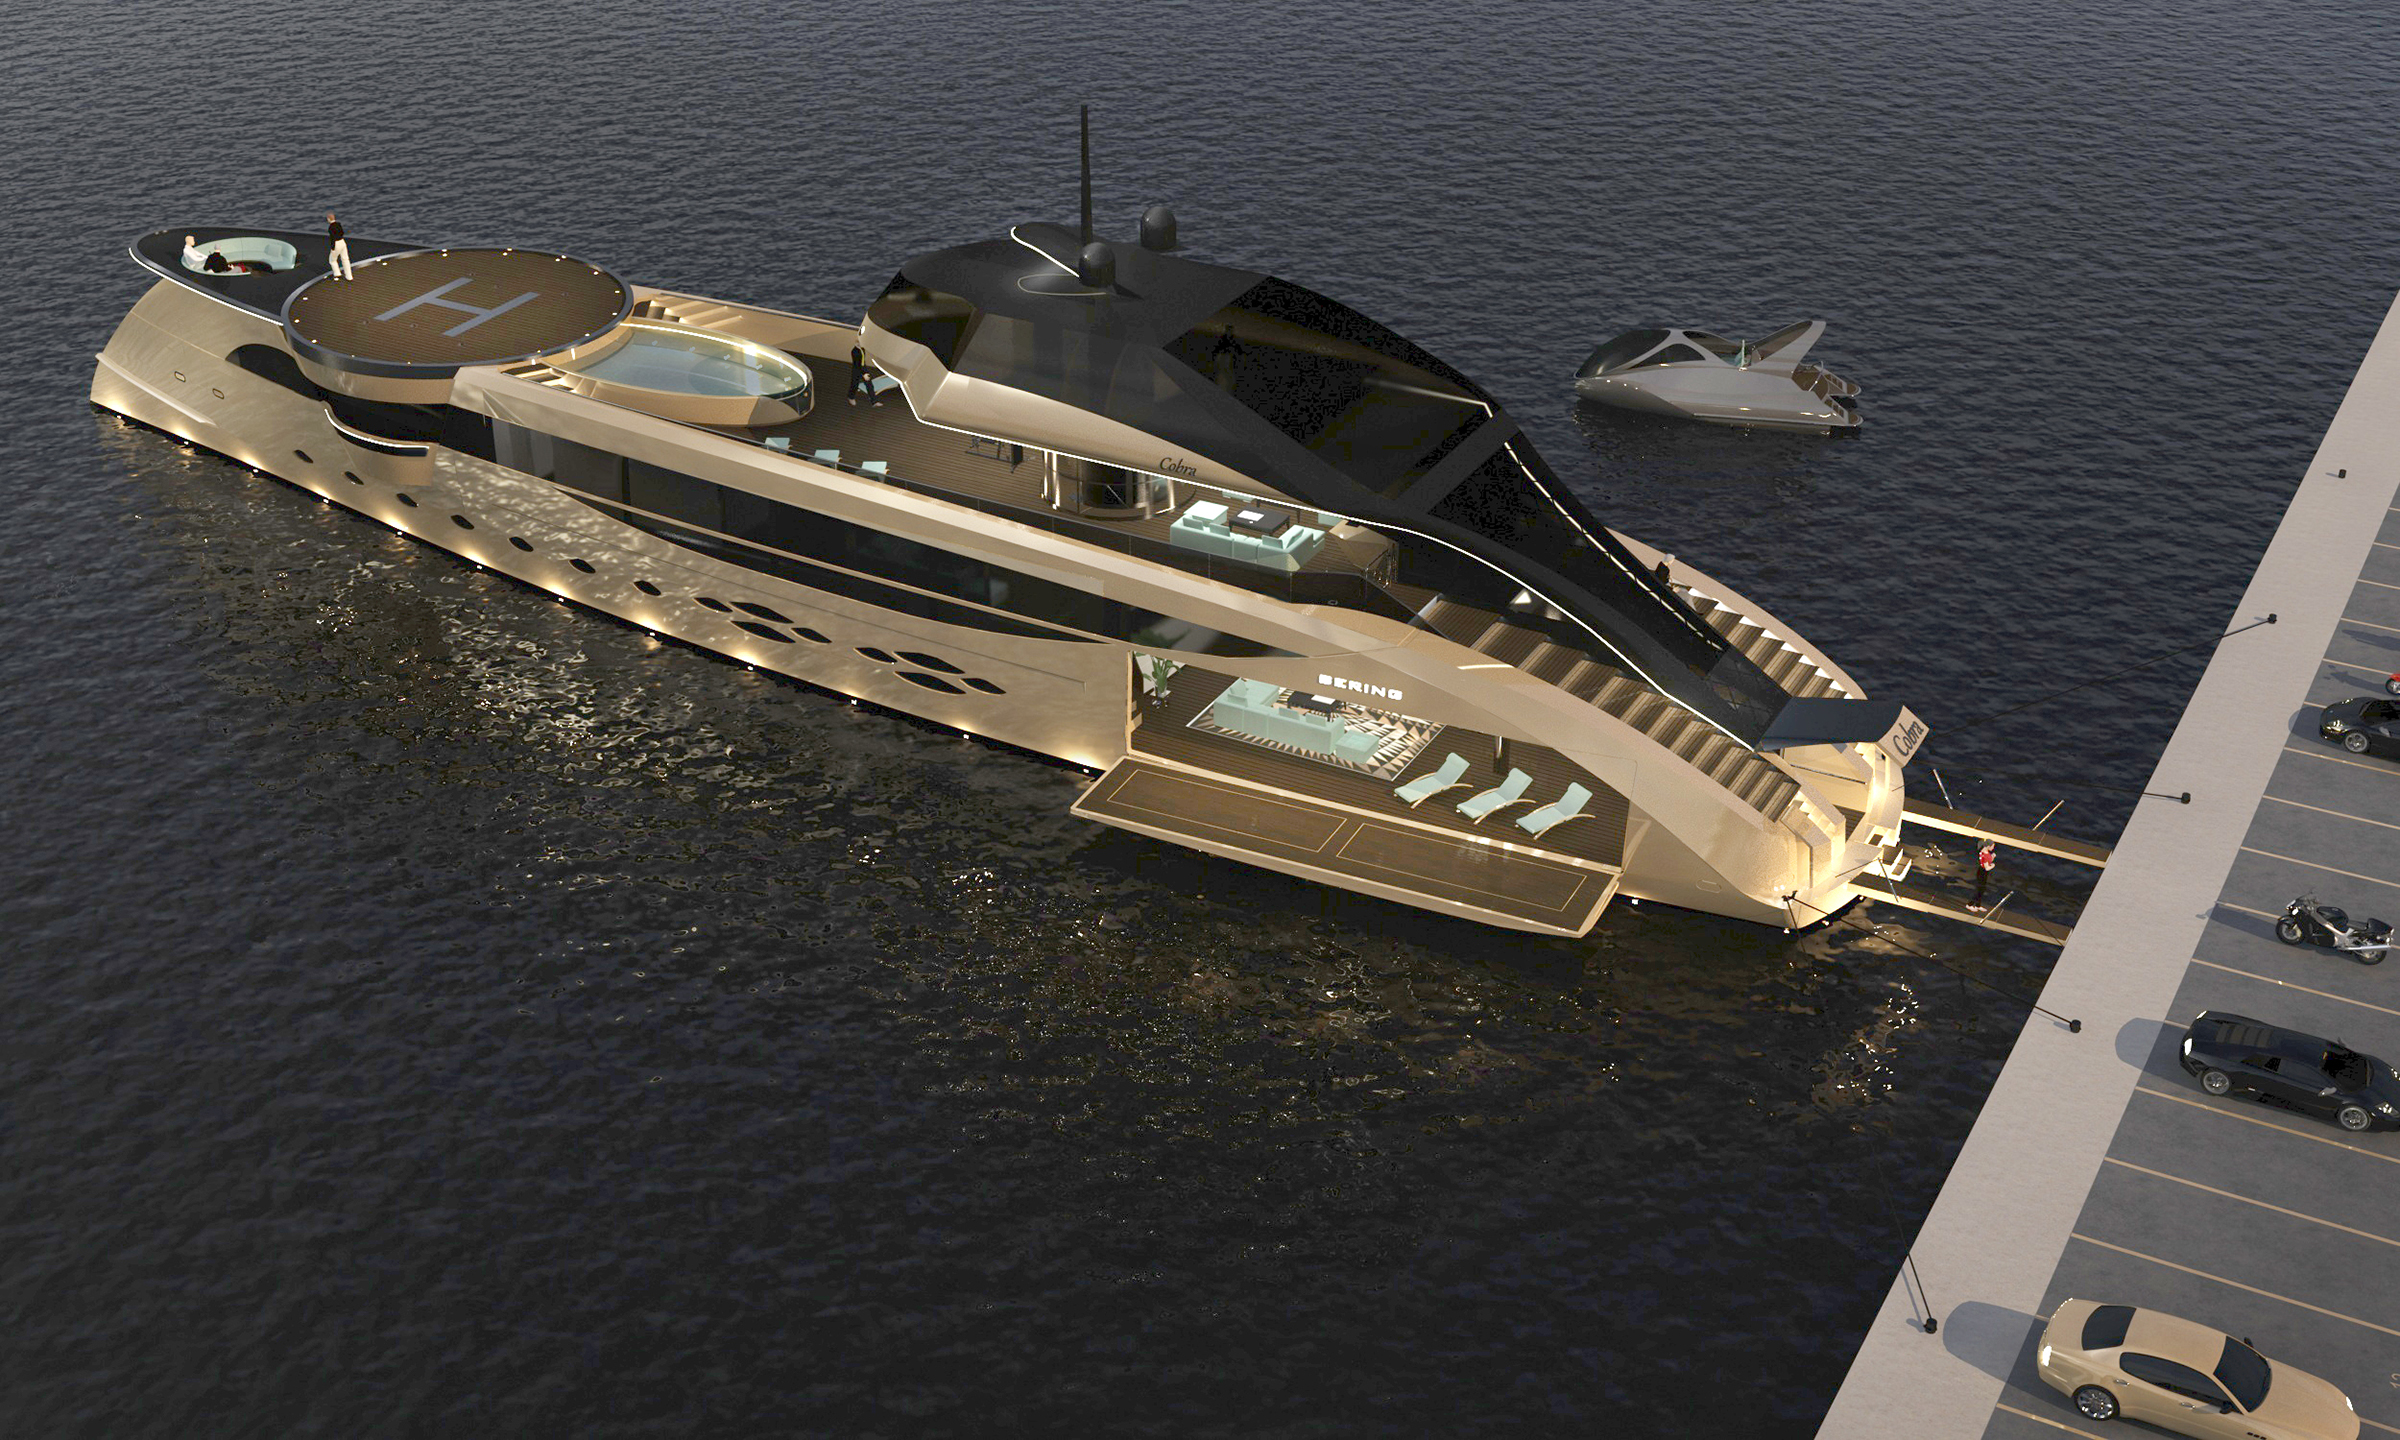 The future is now: Bering Yachts introduces the Cobra concept